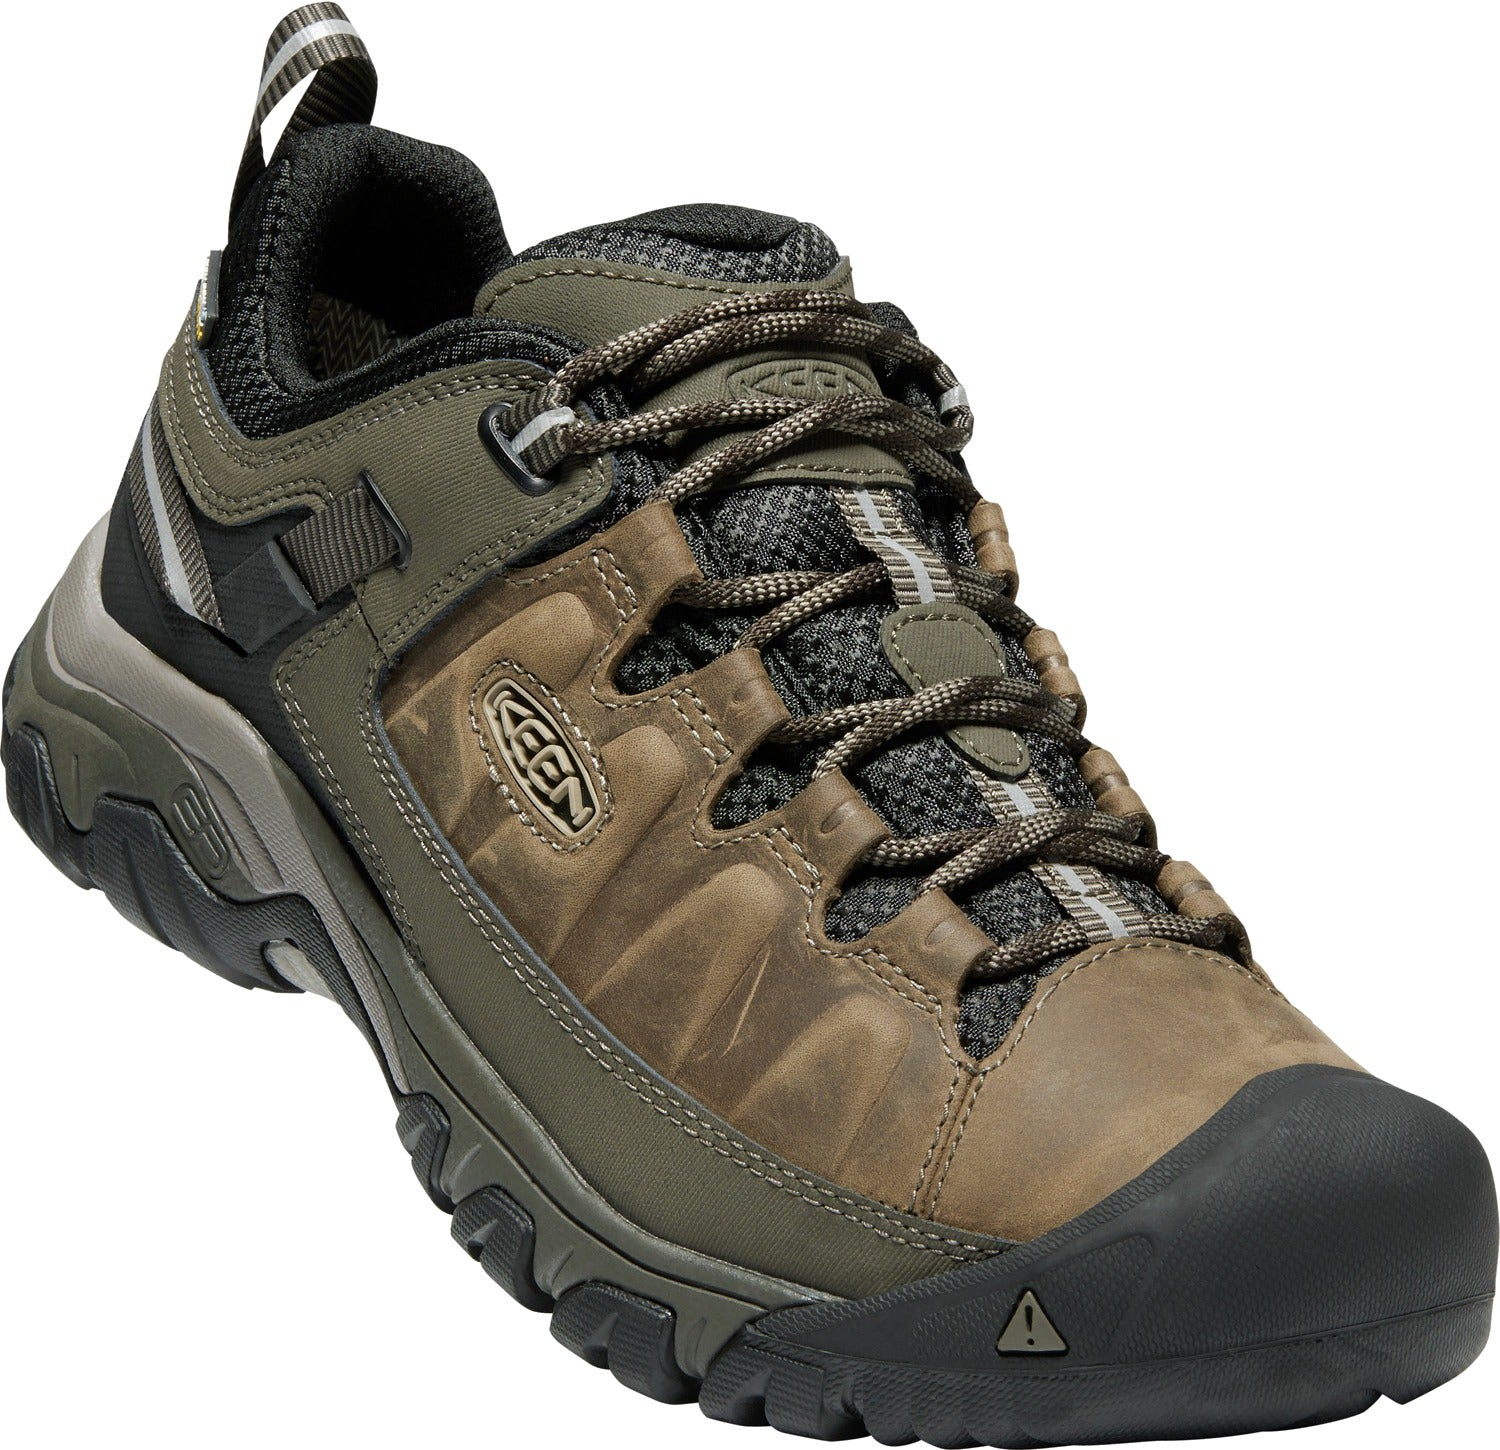 'Keen' Men's Targhee III WP Hiker - Bungee Cord Brown / Olive Green / Black